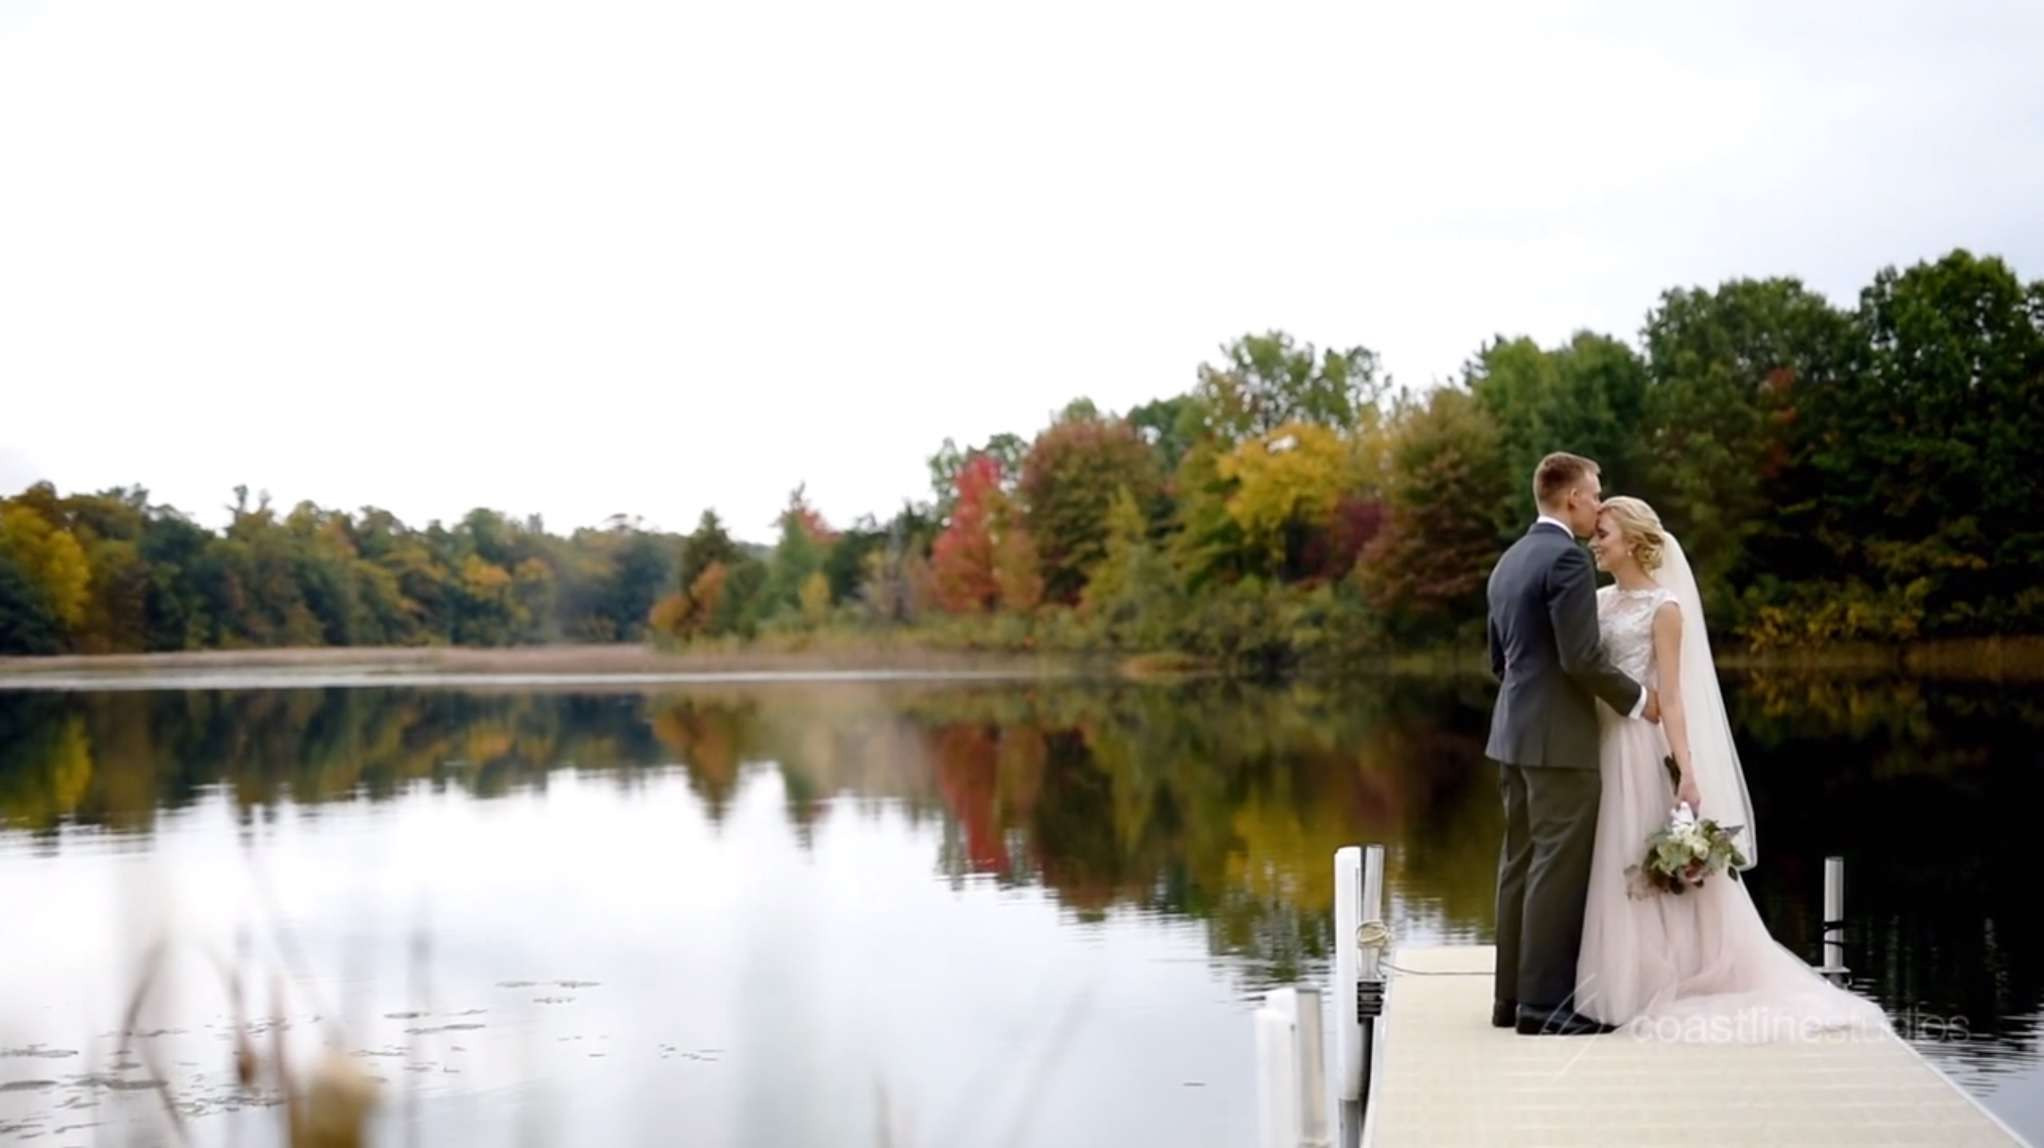 Morgan + Nick's Theatrical Wedding Trailer